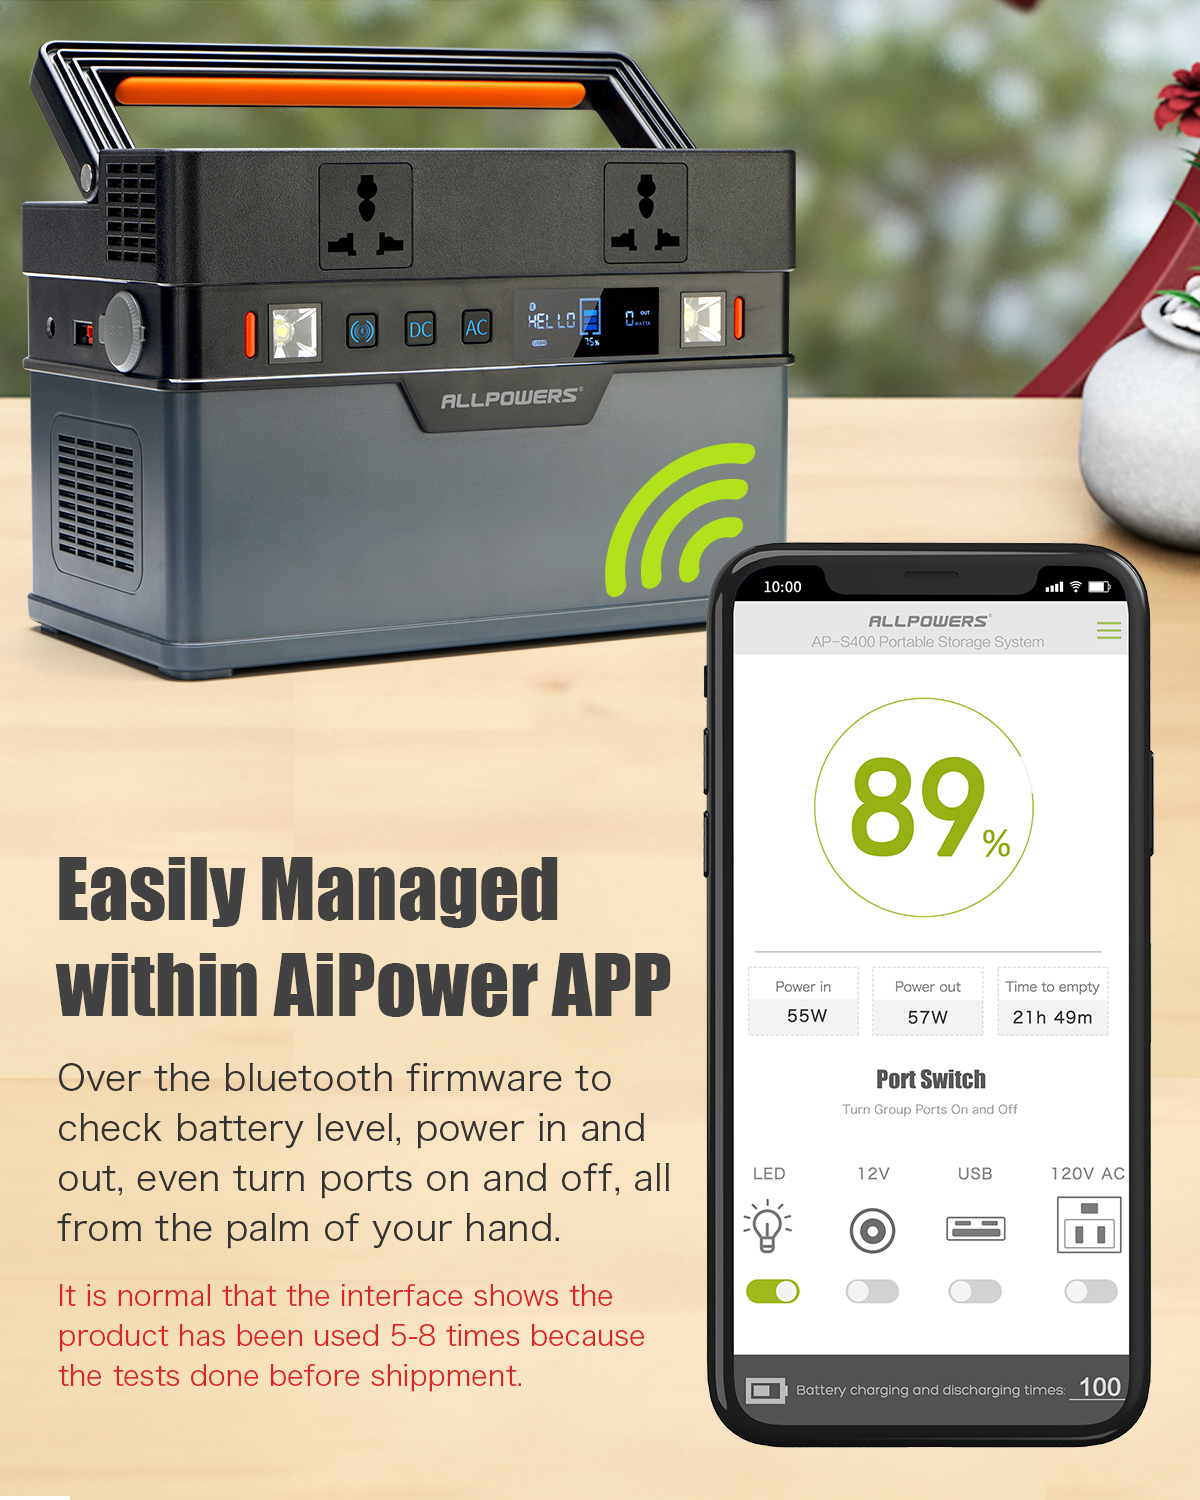 ALLPOWERS 500W Portable Power Station 666Wh Generator Wireless Charger For Camping Outdoor Use Supply 110V 220V